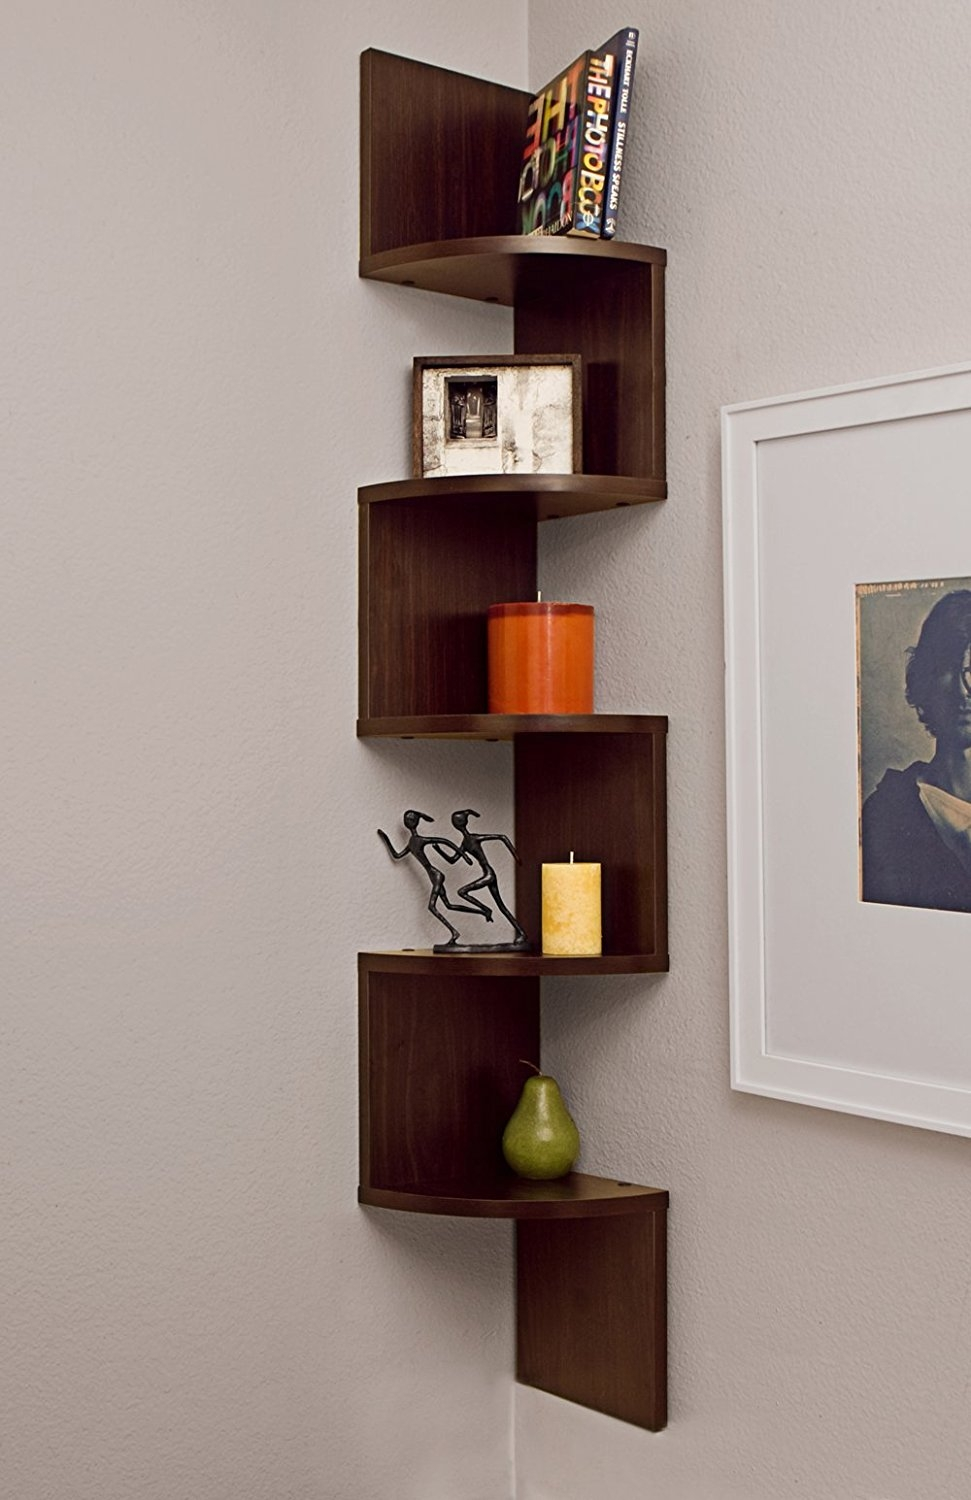 Wall Mounted Shelf Inside Corner Shelf For Dvd Player On Wall (Image 12 of 15)